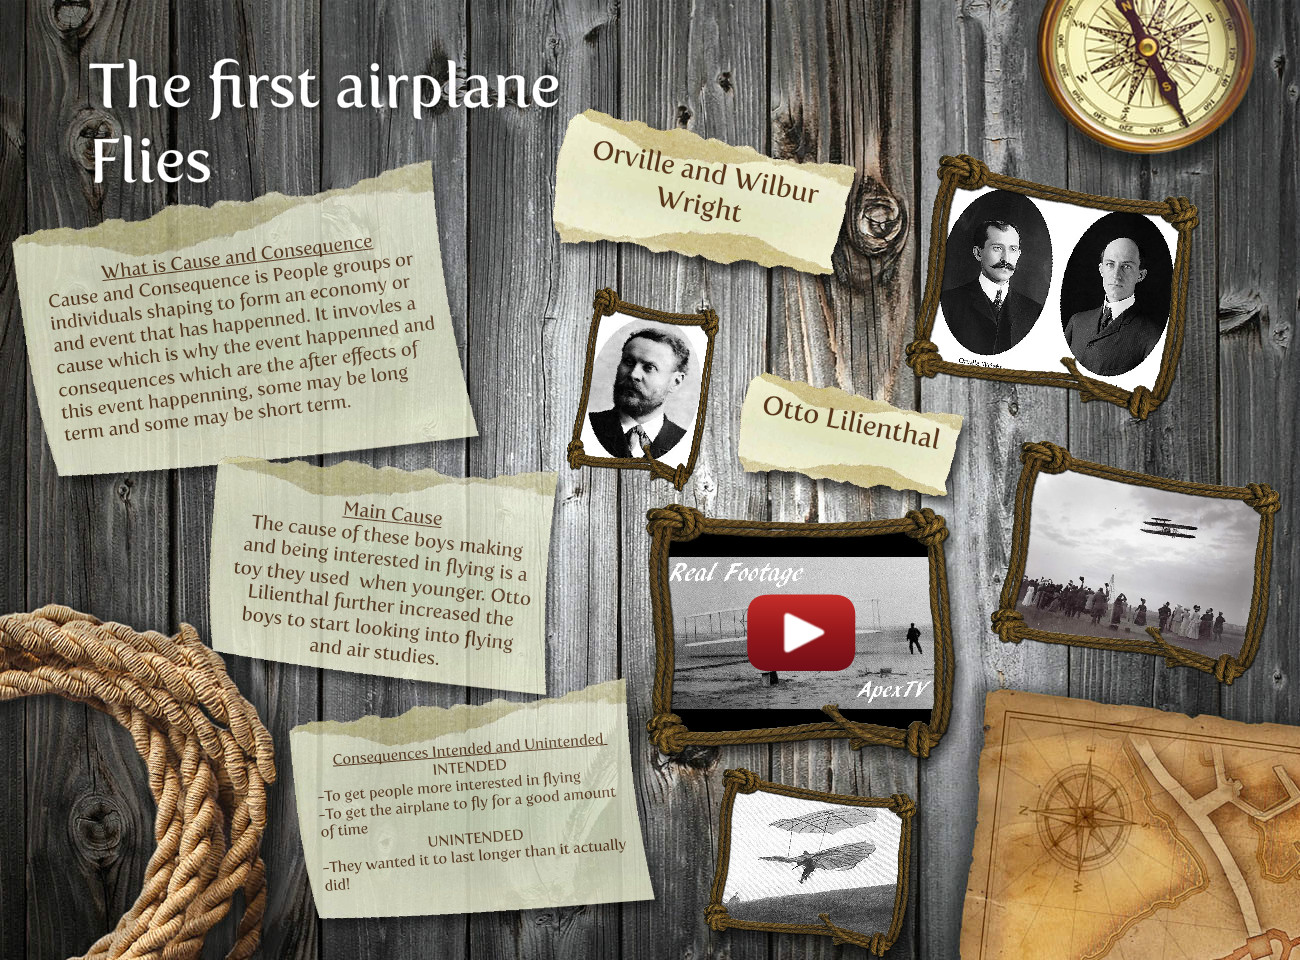 The First Airplane Flies